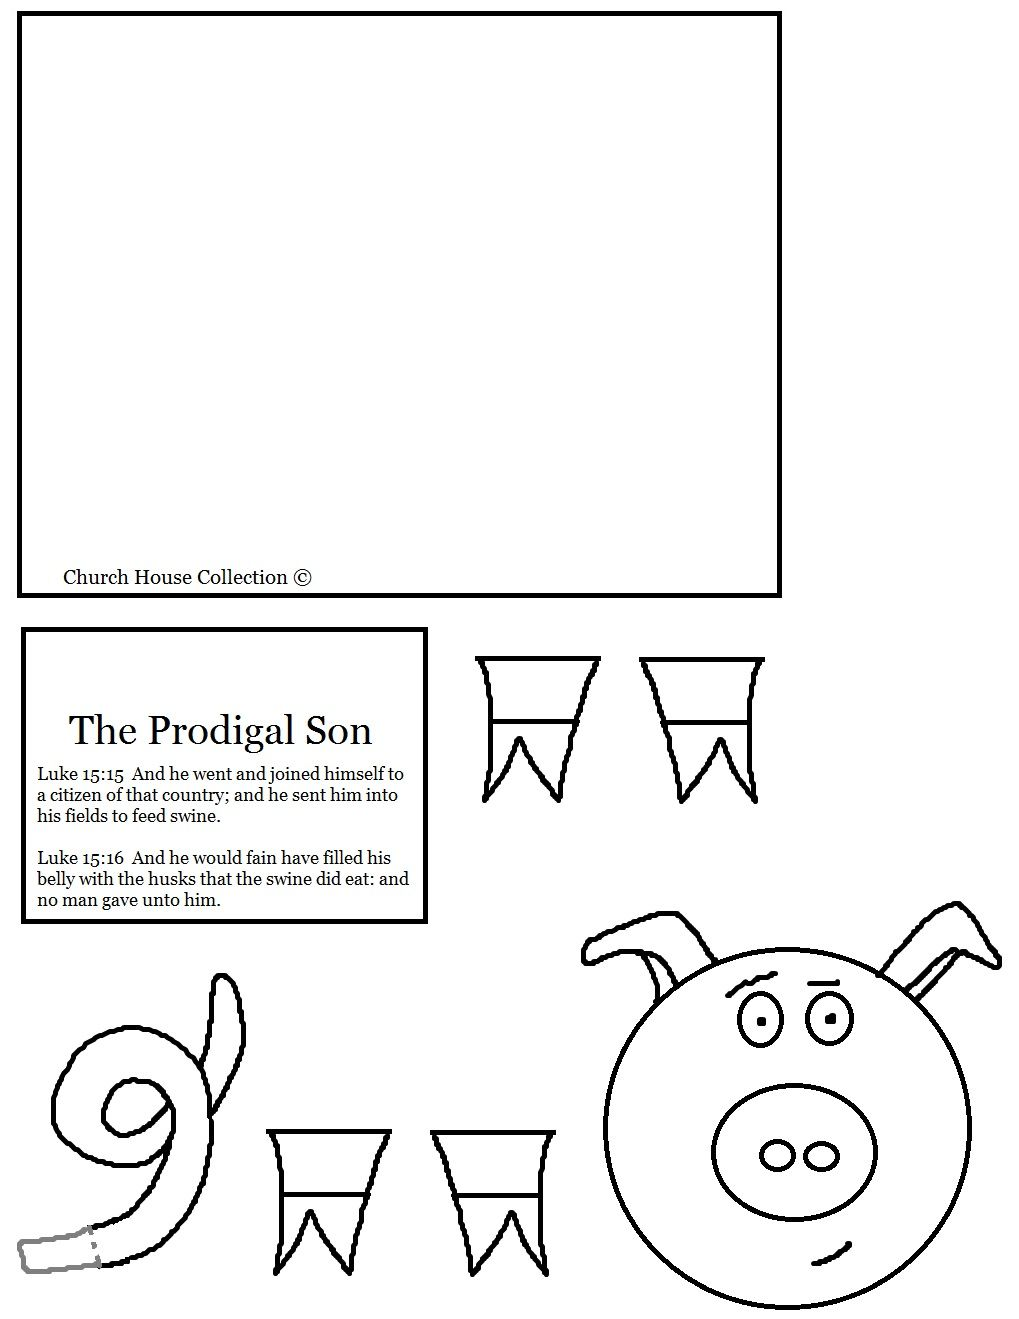 Sunday School Lessons, Sunday School Coloring Pages